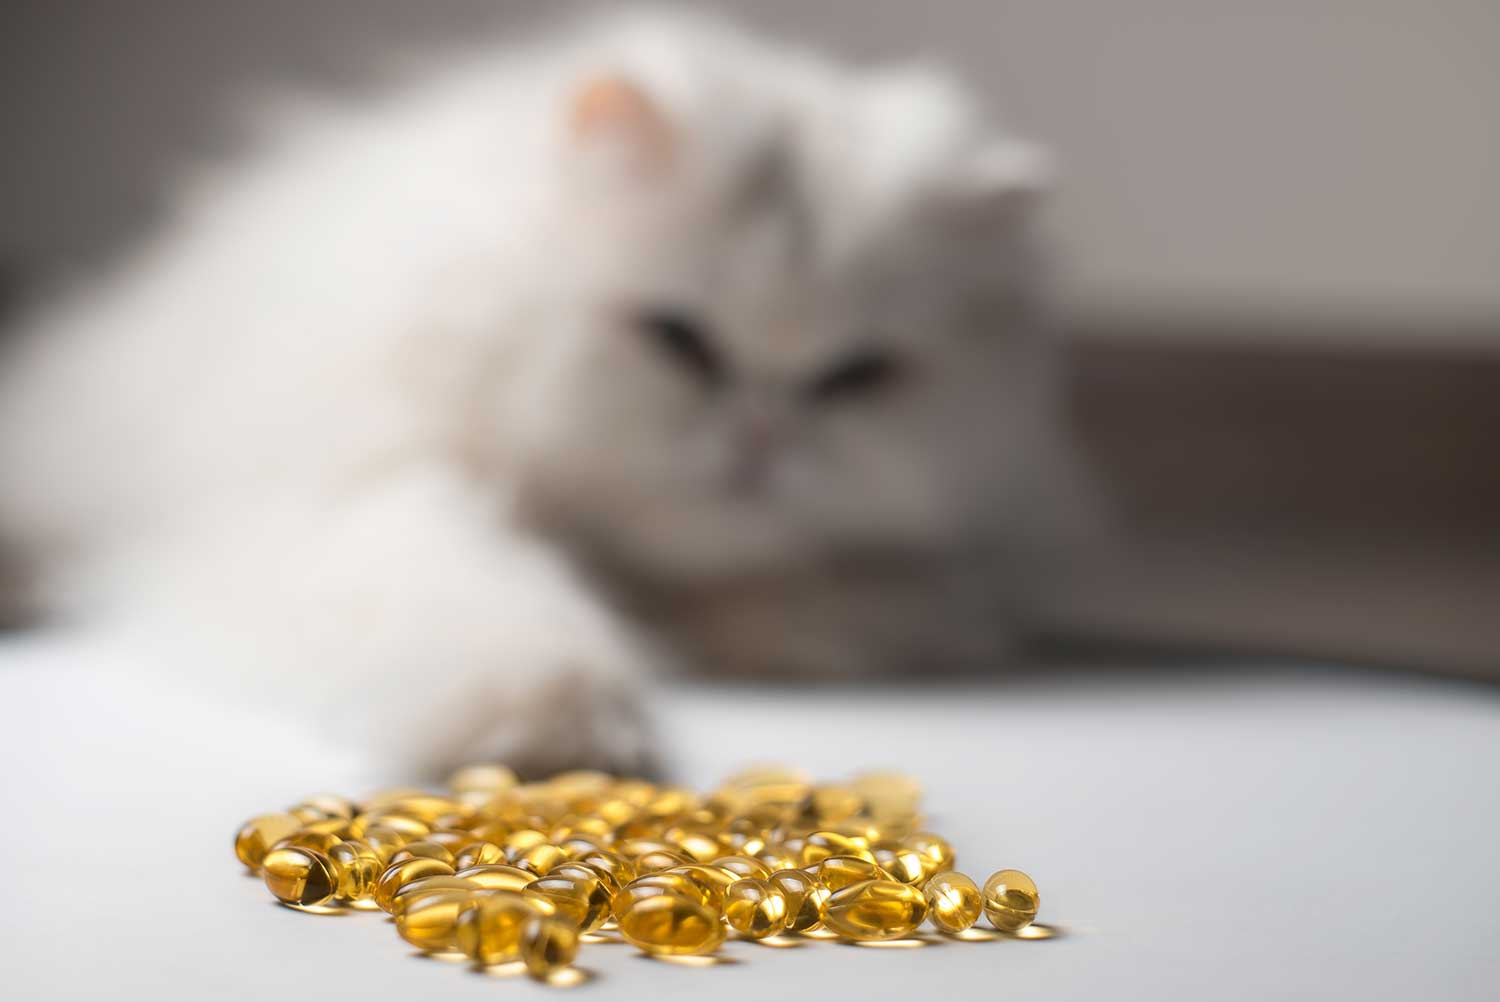 Several capsules of fish oil with curious cat in the background